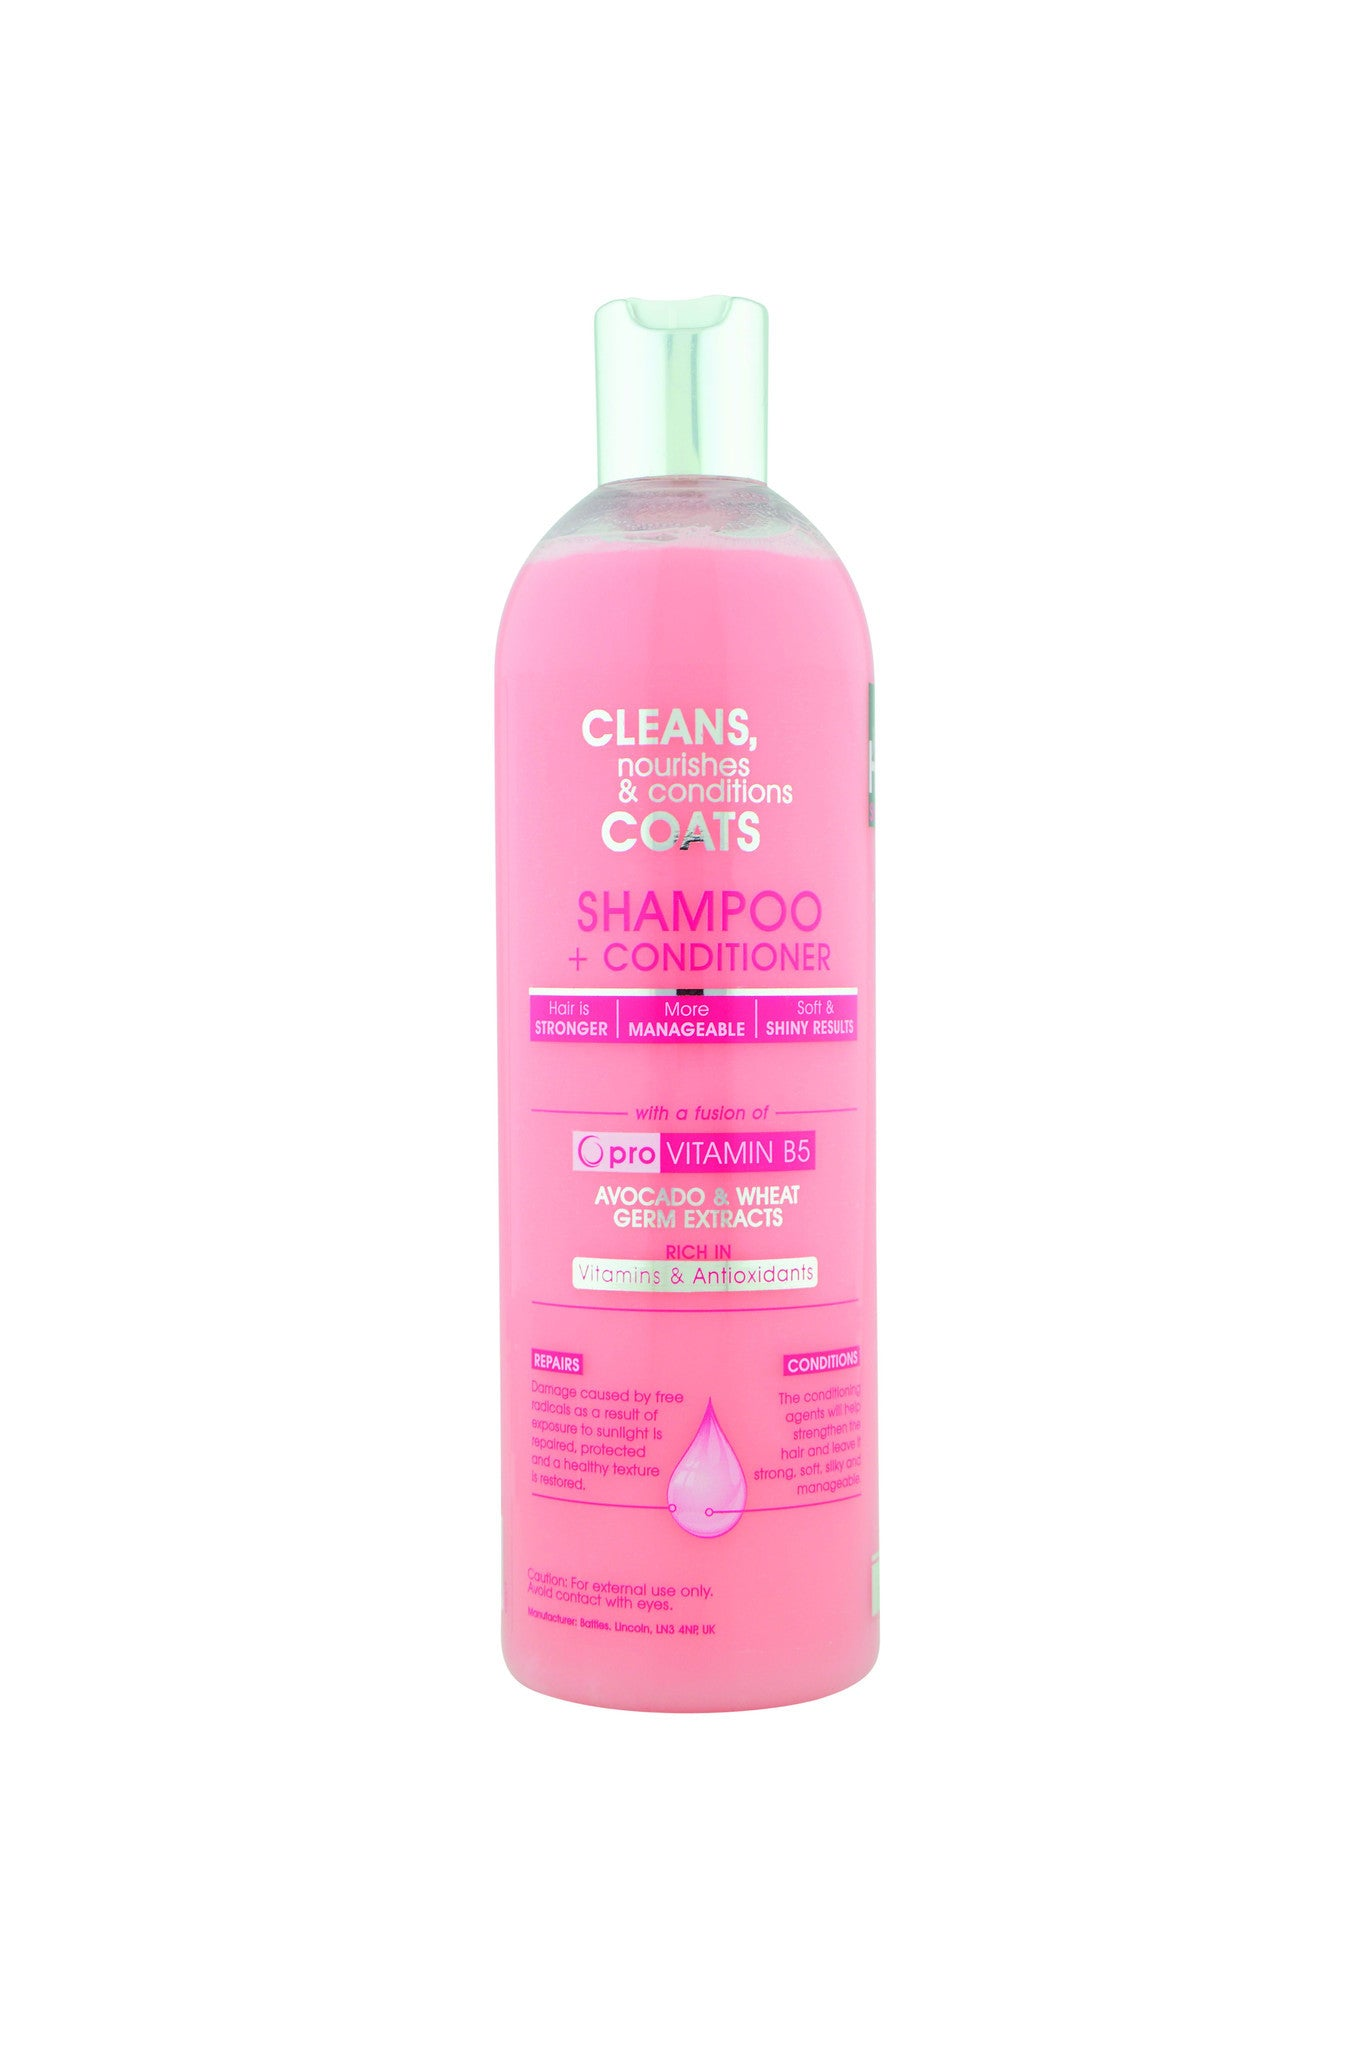 HyShine Magic Sparkle 2 in 1 Conditioner & Shampoo